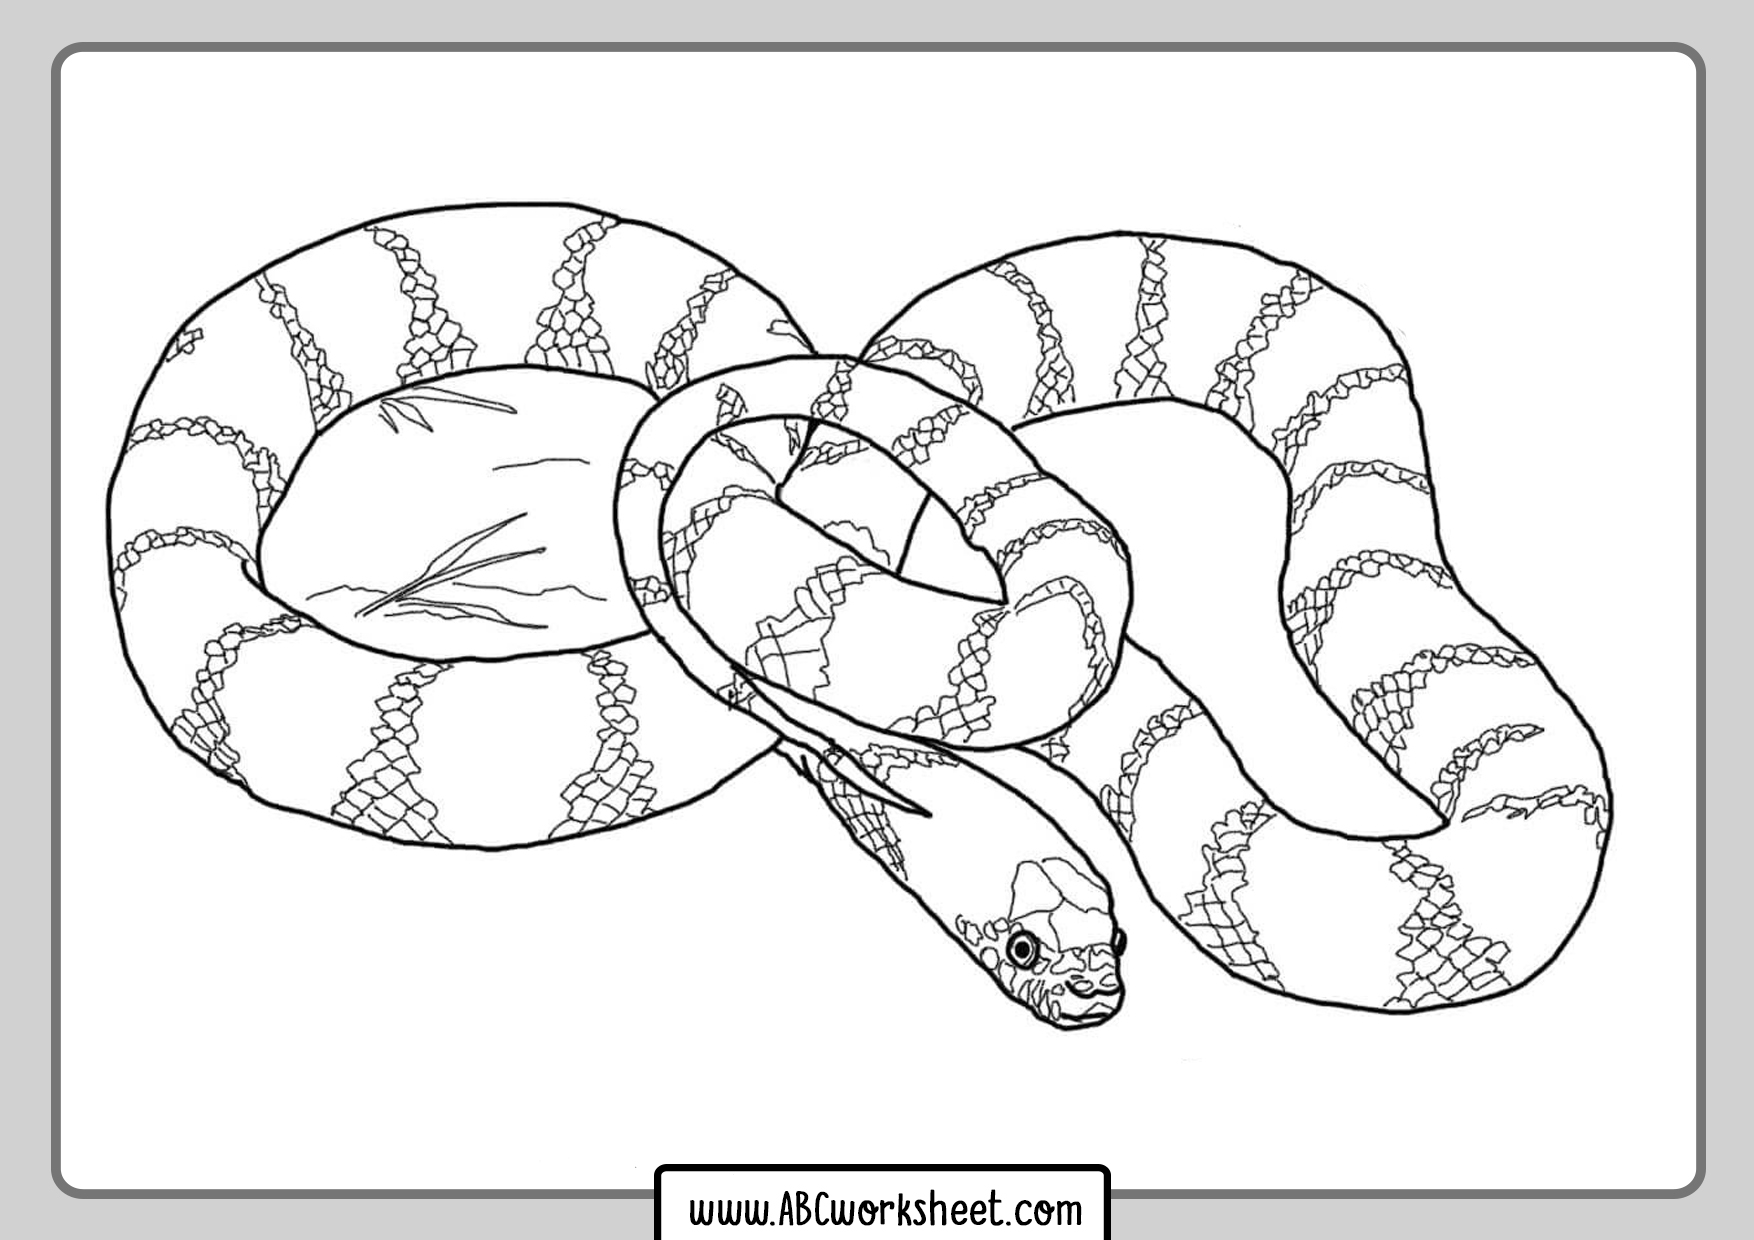 Coral Snake Coloring Page